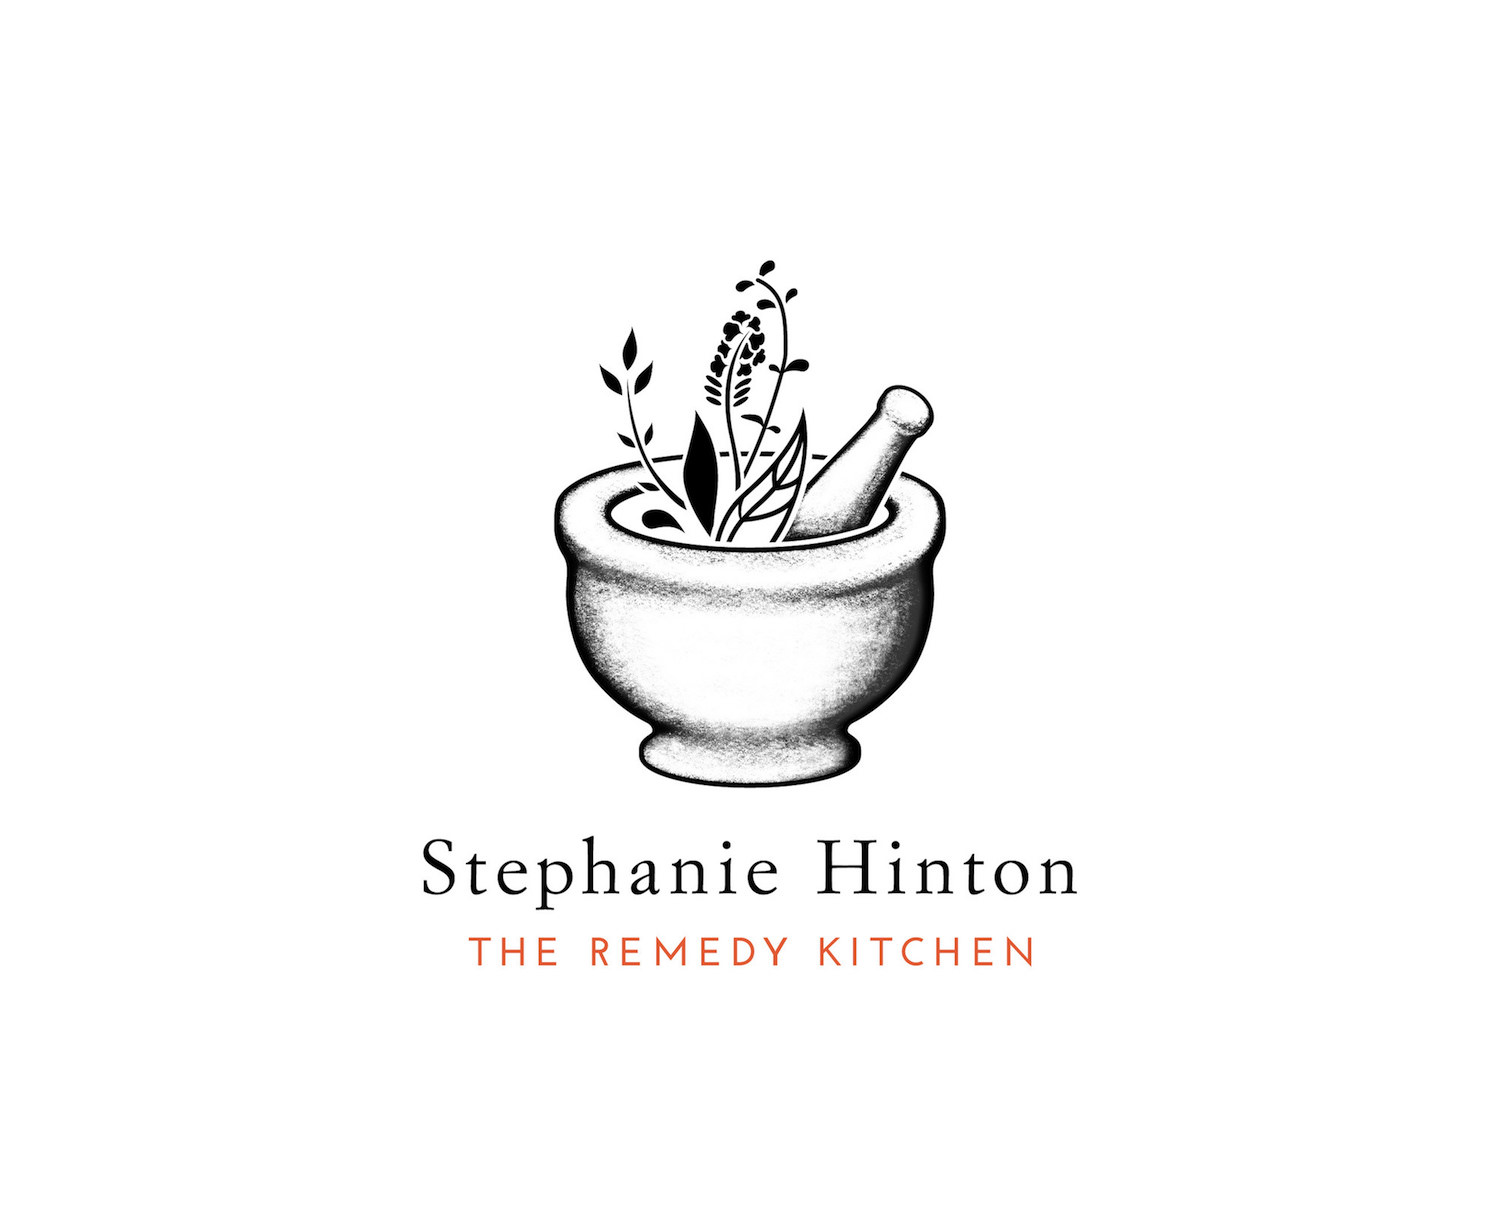 Jo-ChunYan-Graphic-Designer-The-Remedy-Kitchen-Logo.jpg